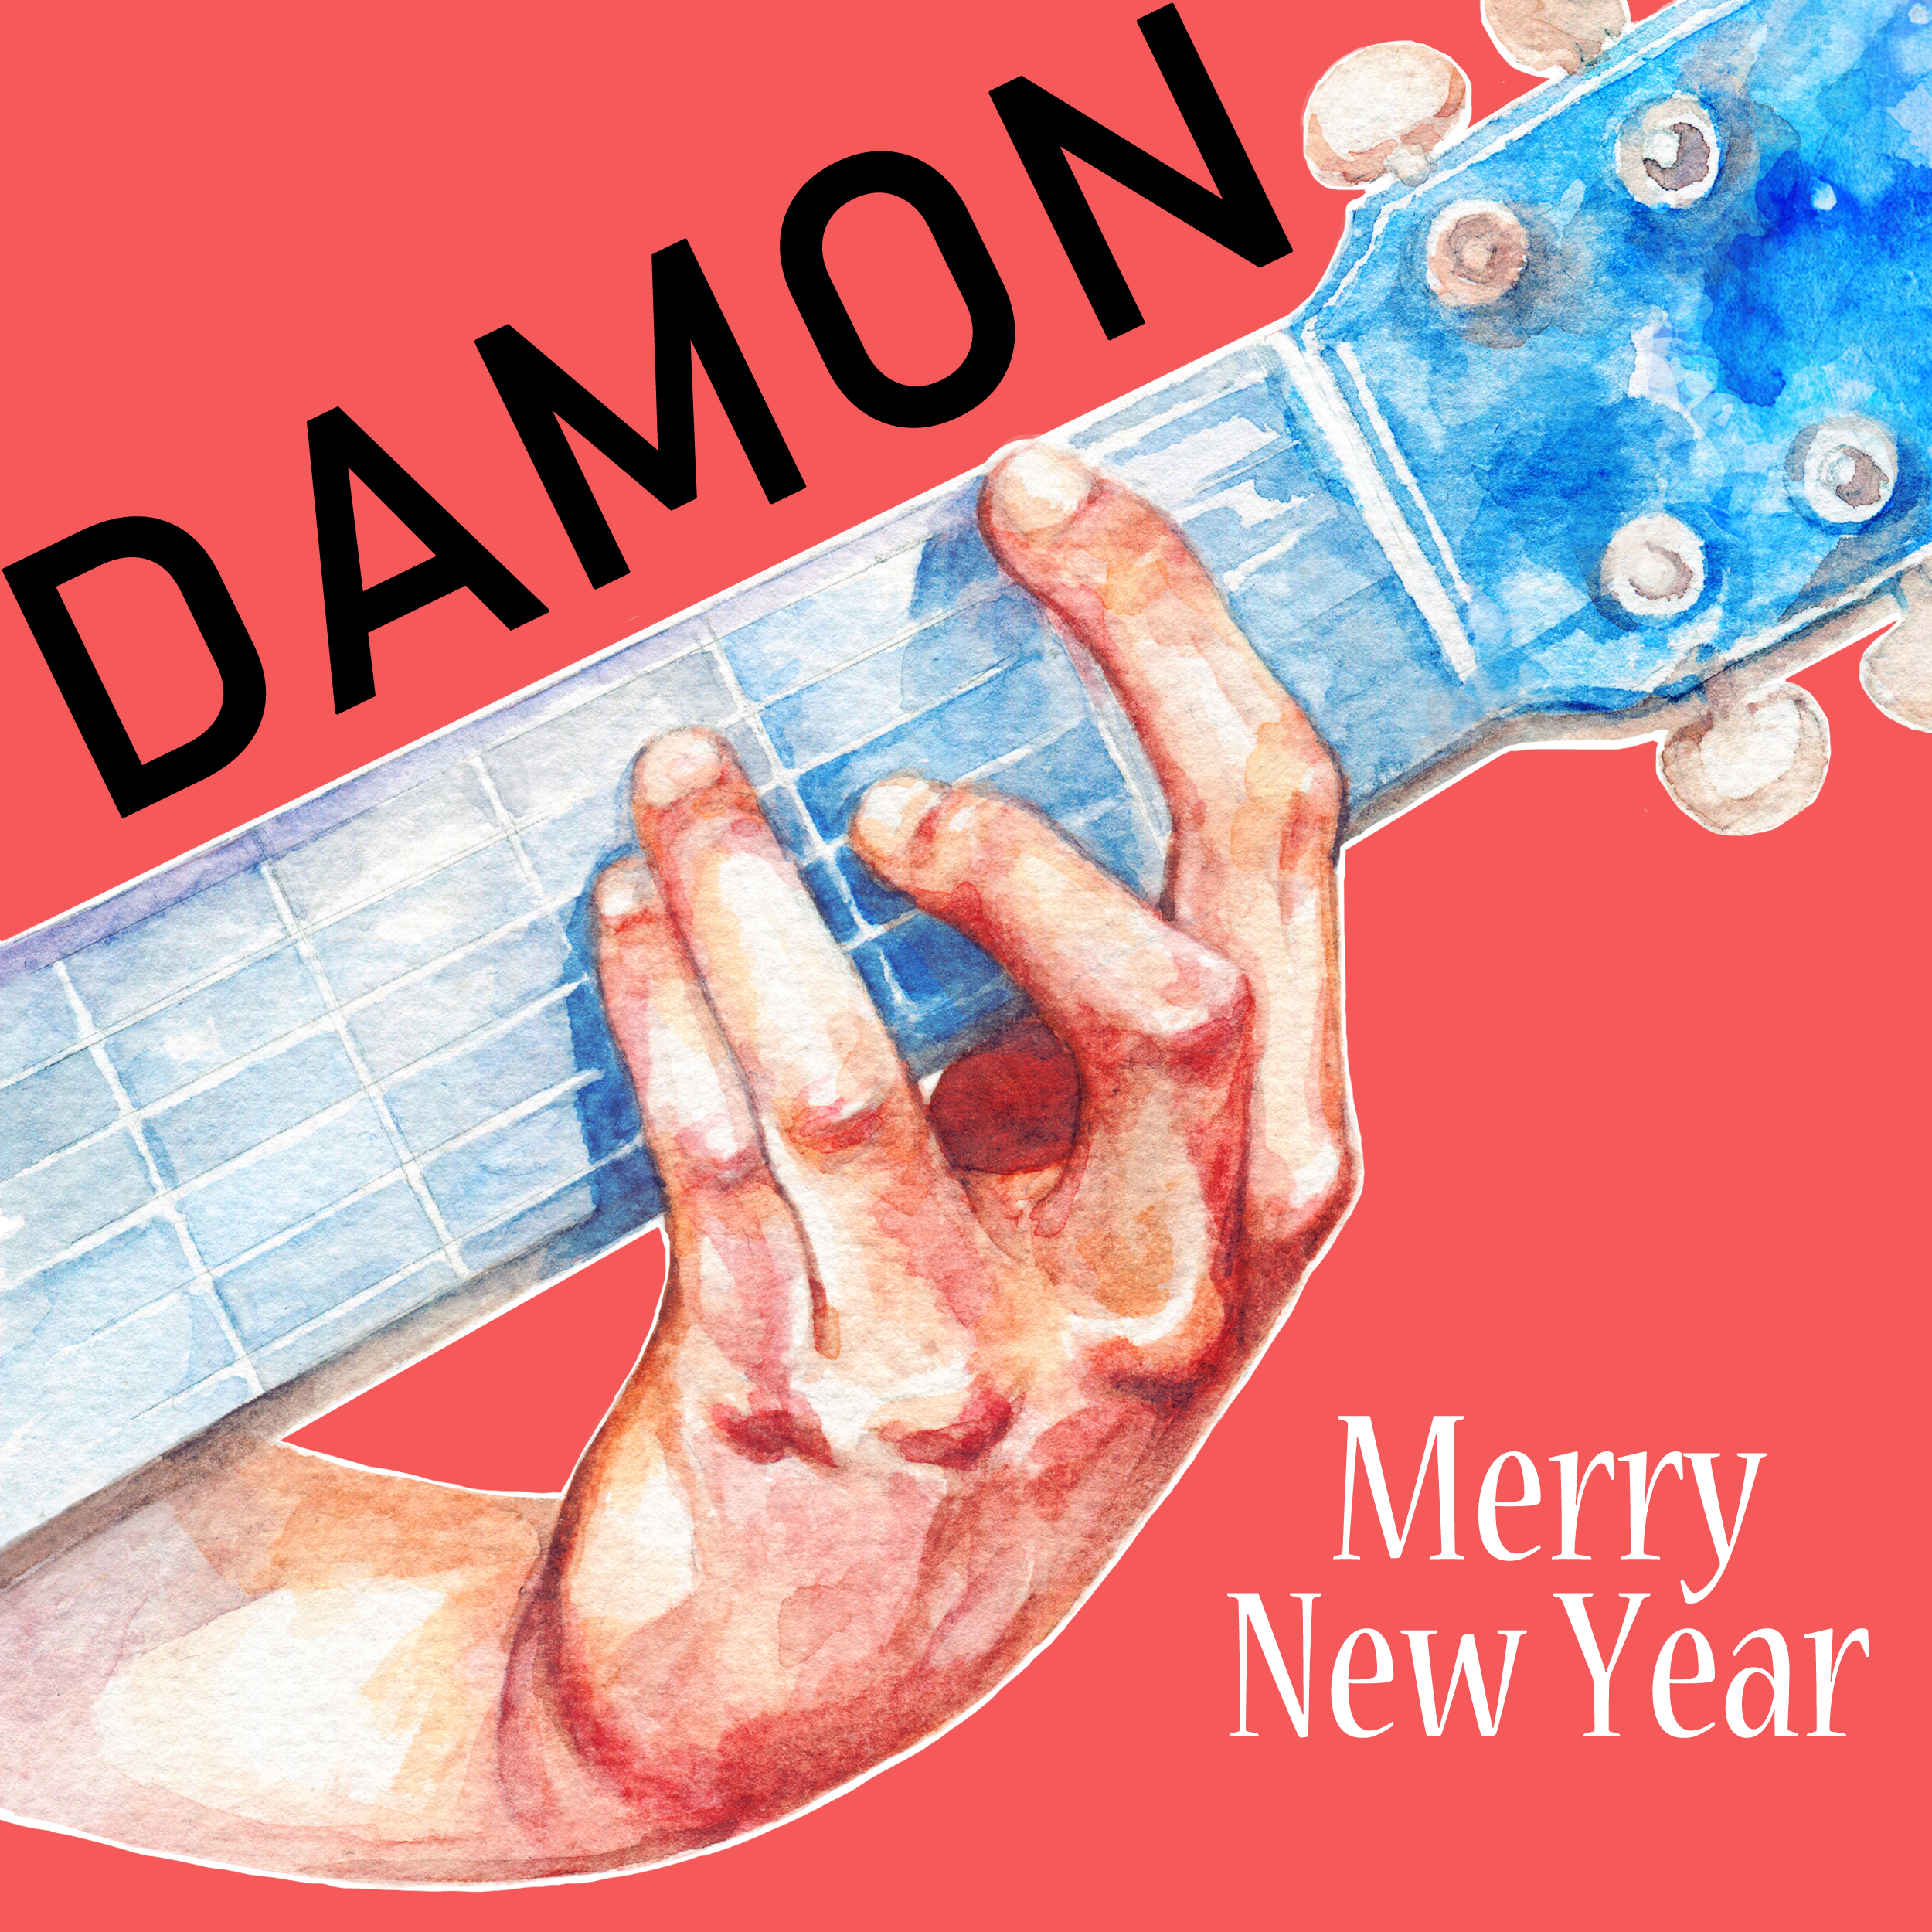 damon-merry-new-year-version1-layers1.png